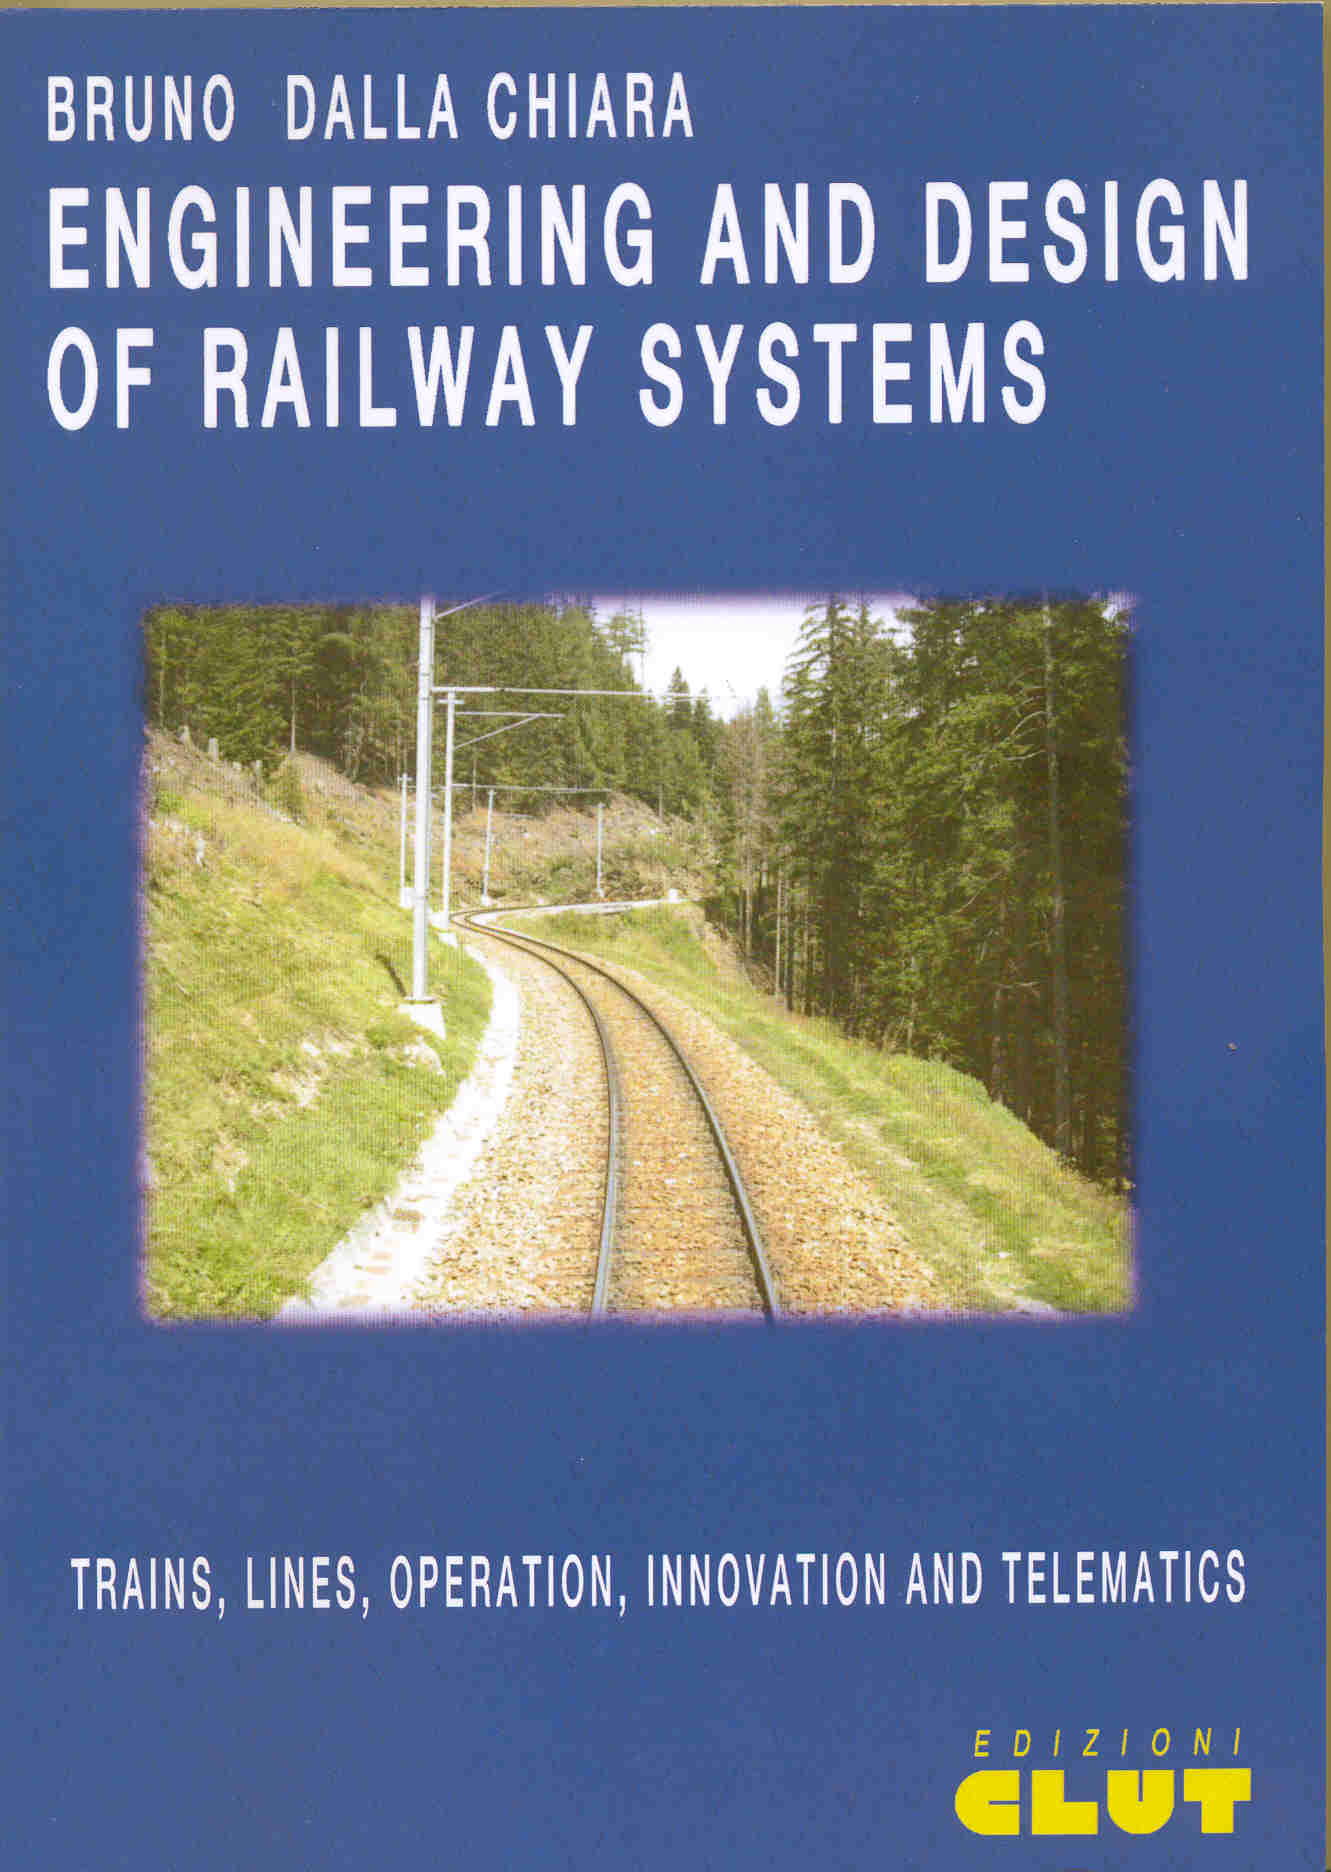 ENGINEERING AND DESIGN OF RAILWAY SYSTEMS